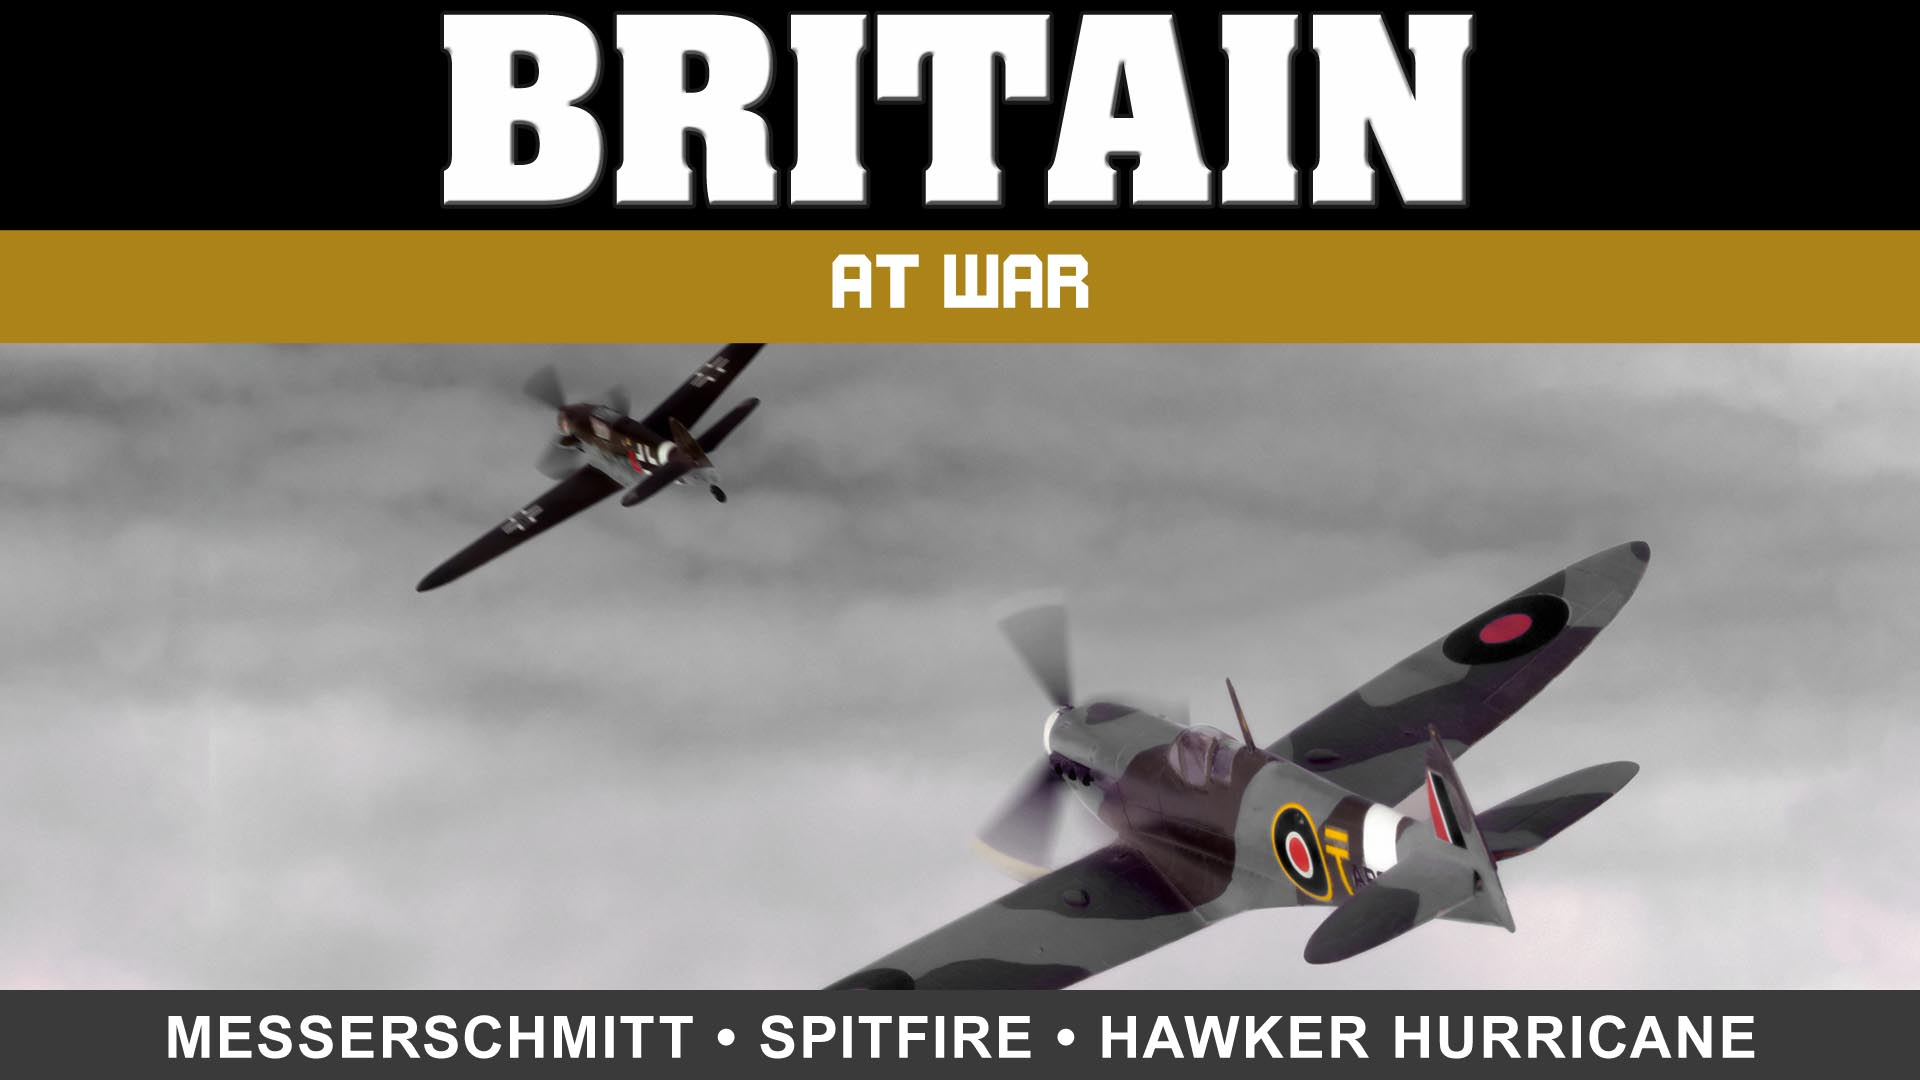 Britain at War: Messerschmidt, Spitfire, and Hawker Hurricane -